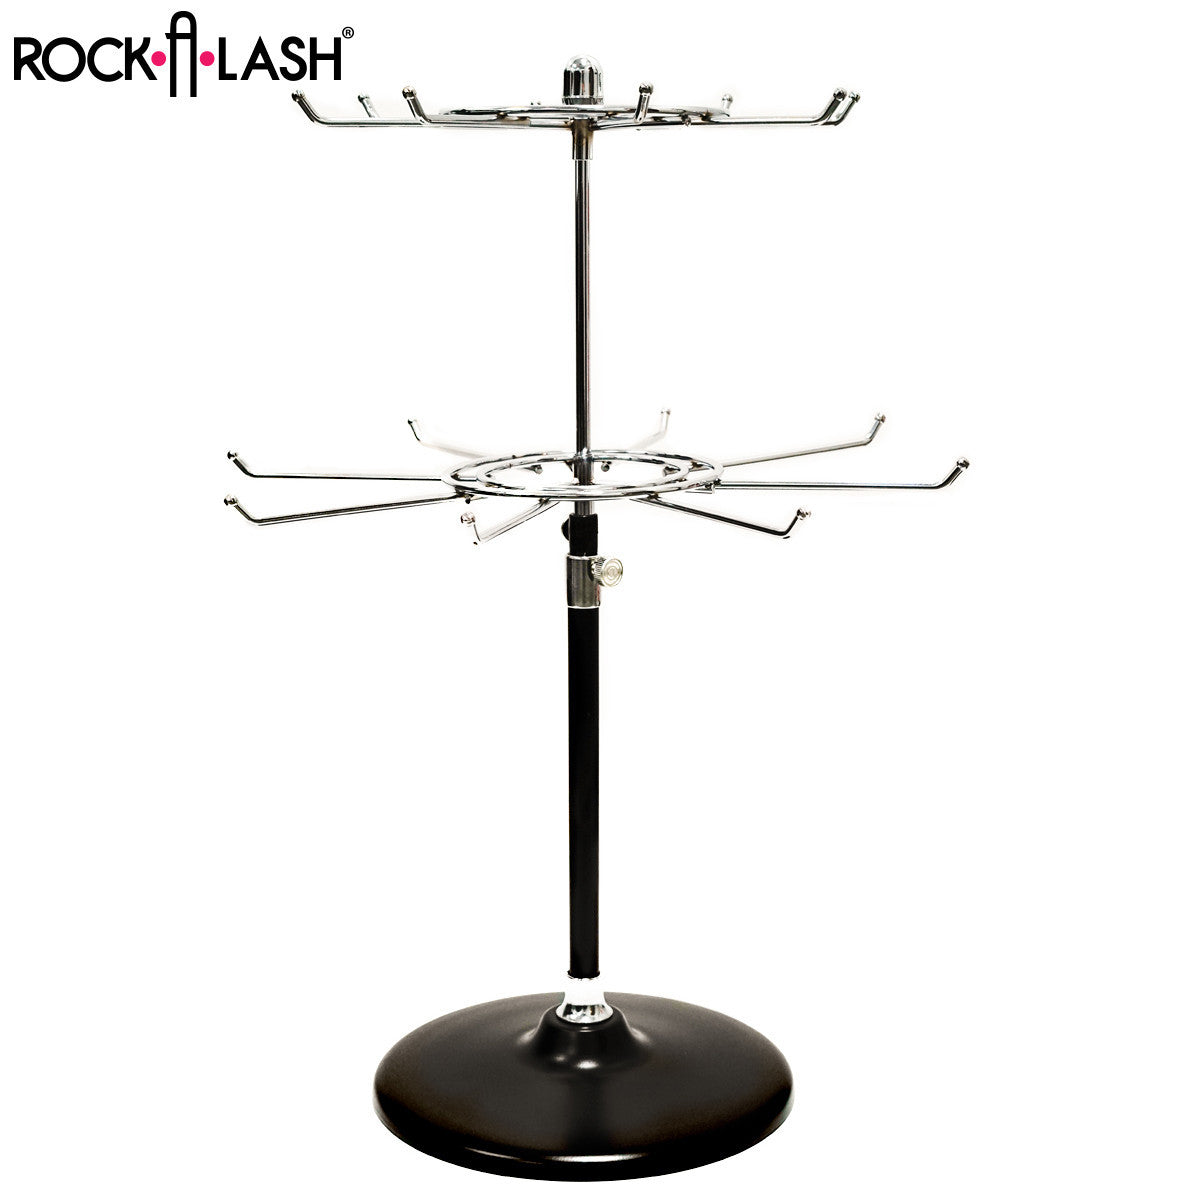 Rock-A-Lash Adjustable Stand